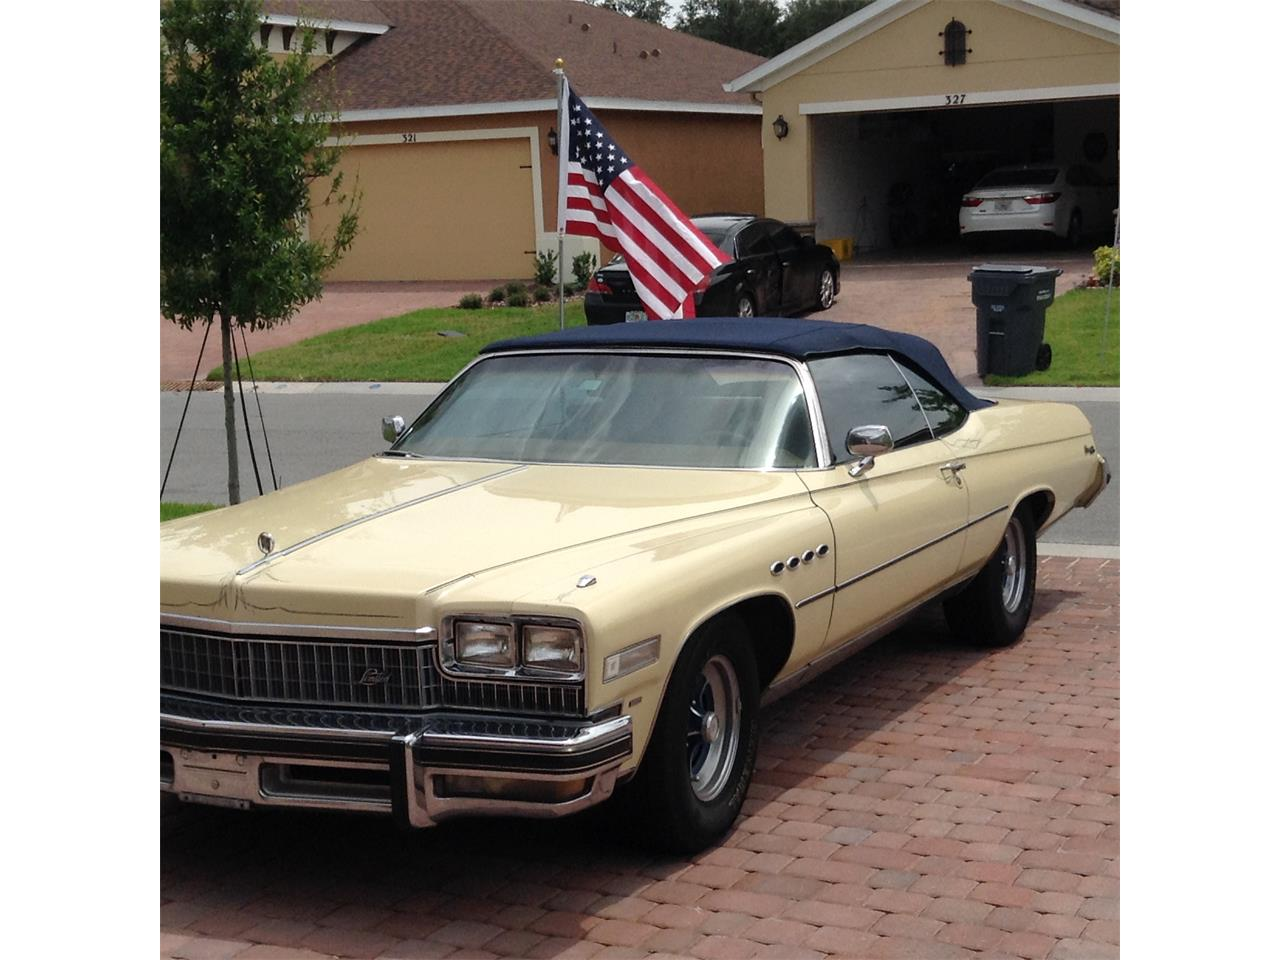 Large Picture of '75 Buick Electra located in Florida Offered by a Private Seller - LEM0